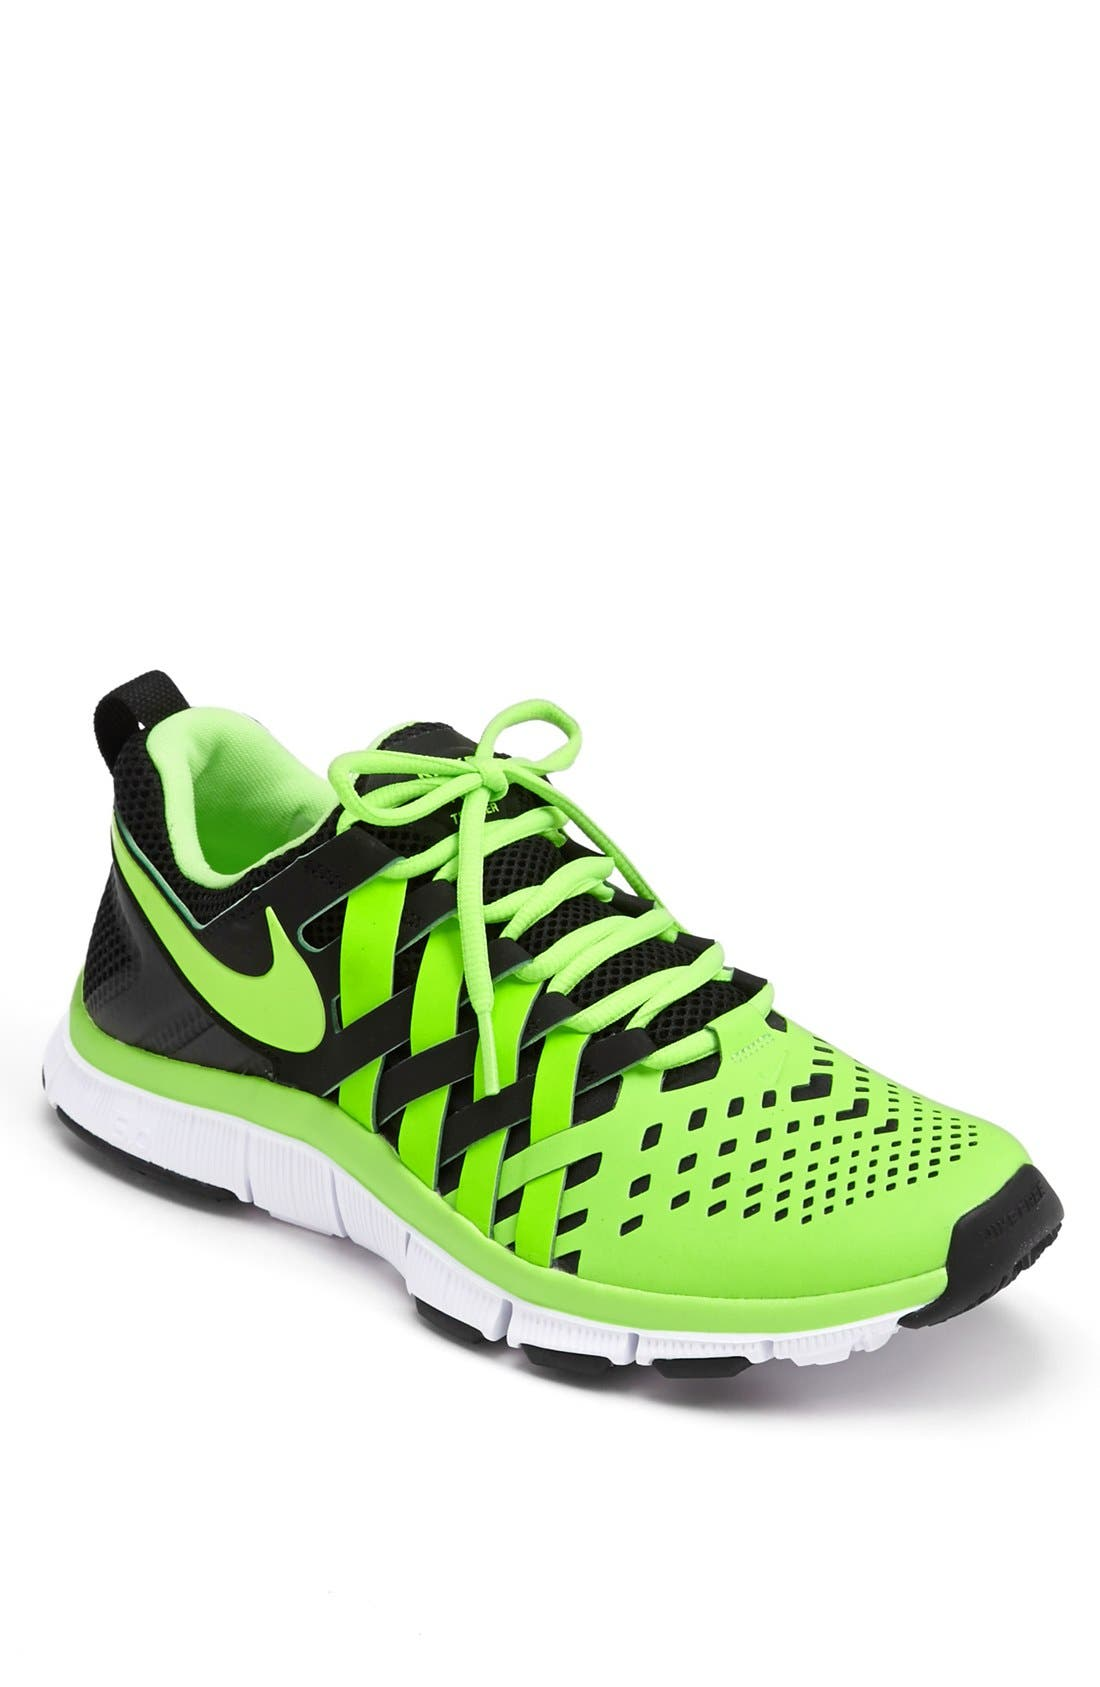 Main Image - Nike 'Free Trainer 5.0' Training Shoe (Men)